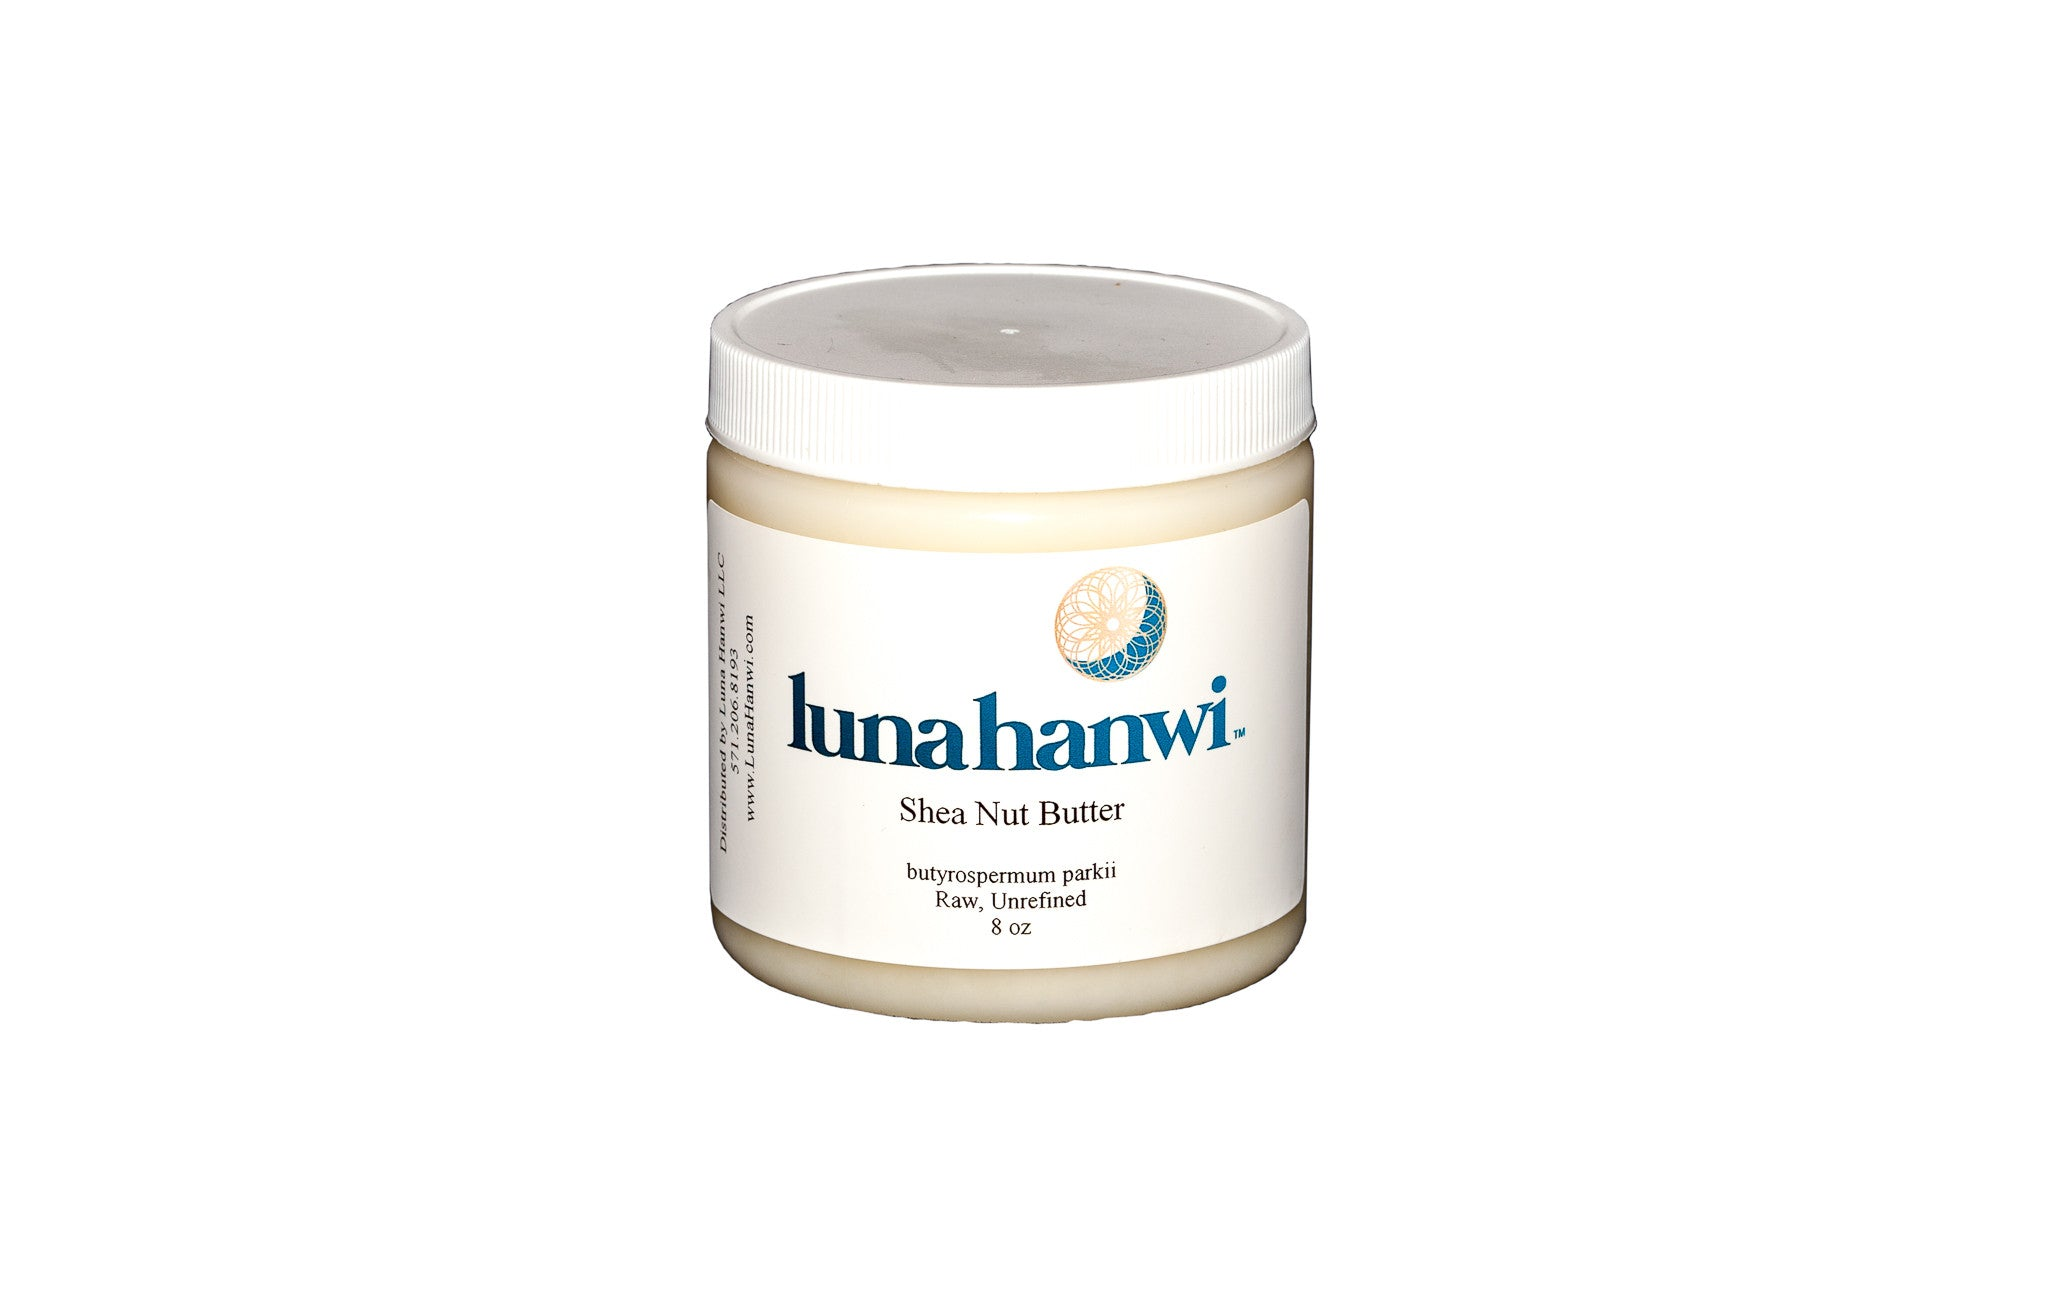 Unrefined Raw Shea Nut Butter - Luna Hanwi